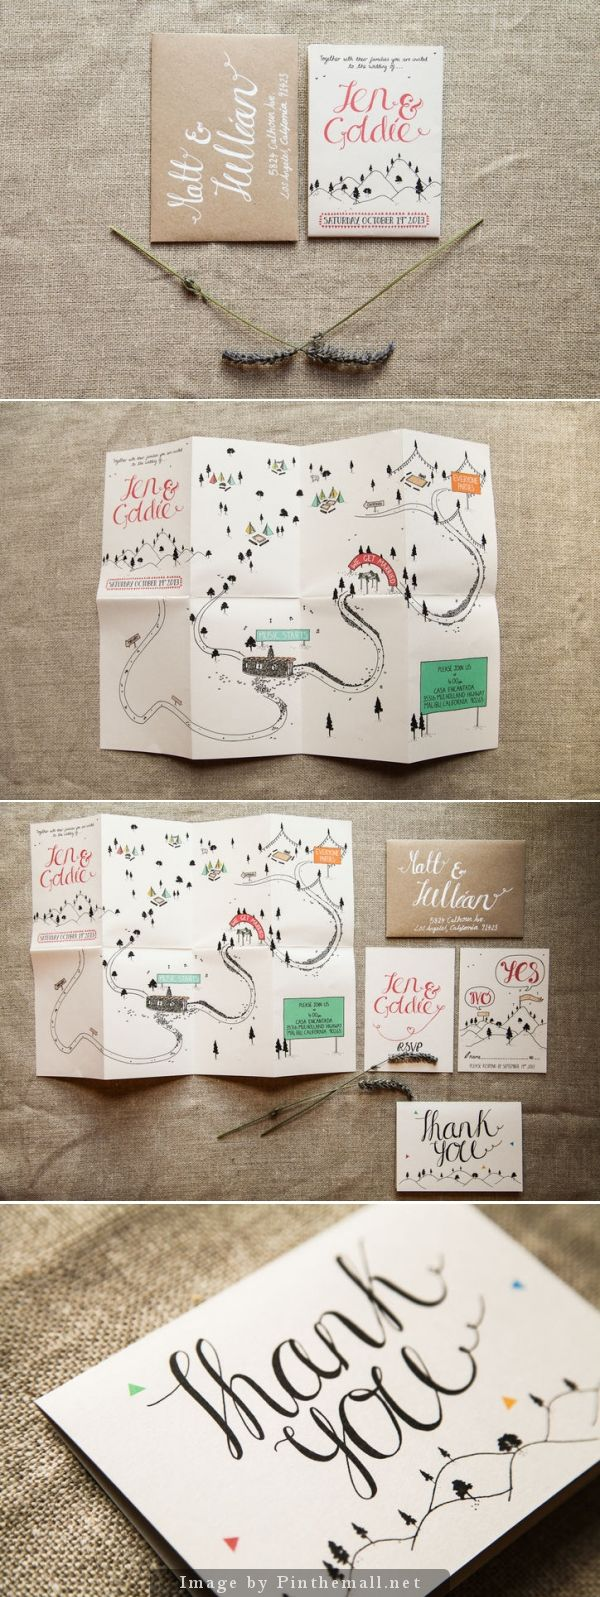 We Designed a Folded Map for Our Wedding Invite. Want to See It?